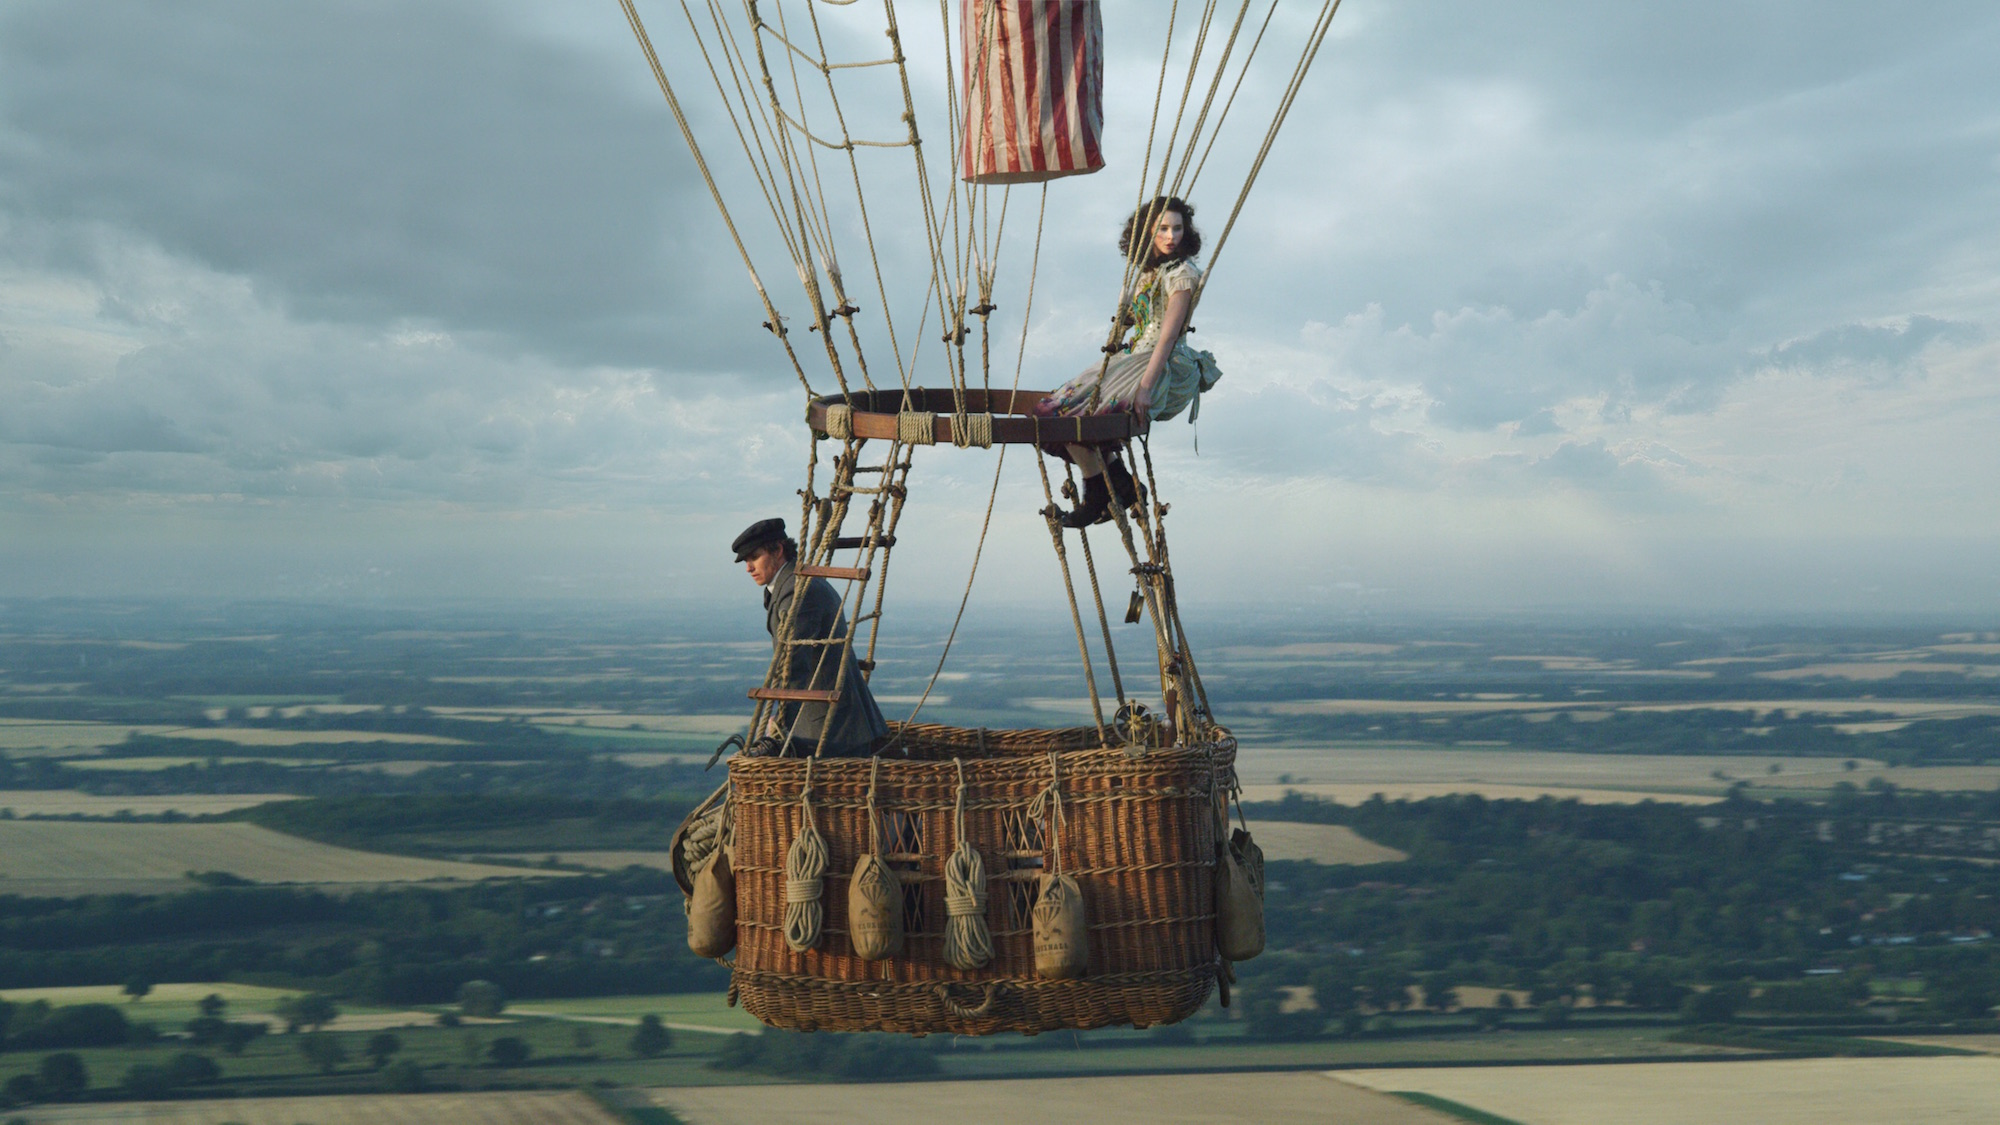 TIFF 2019: The Aeronauts Review